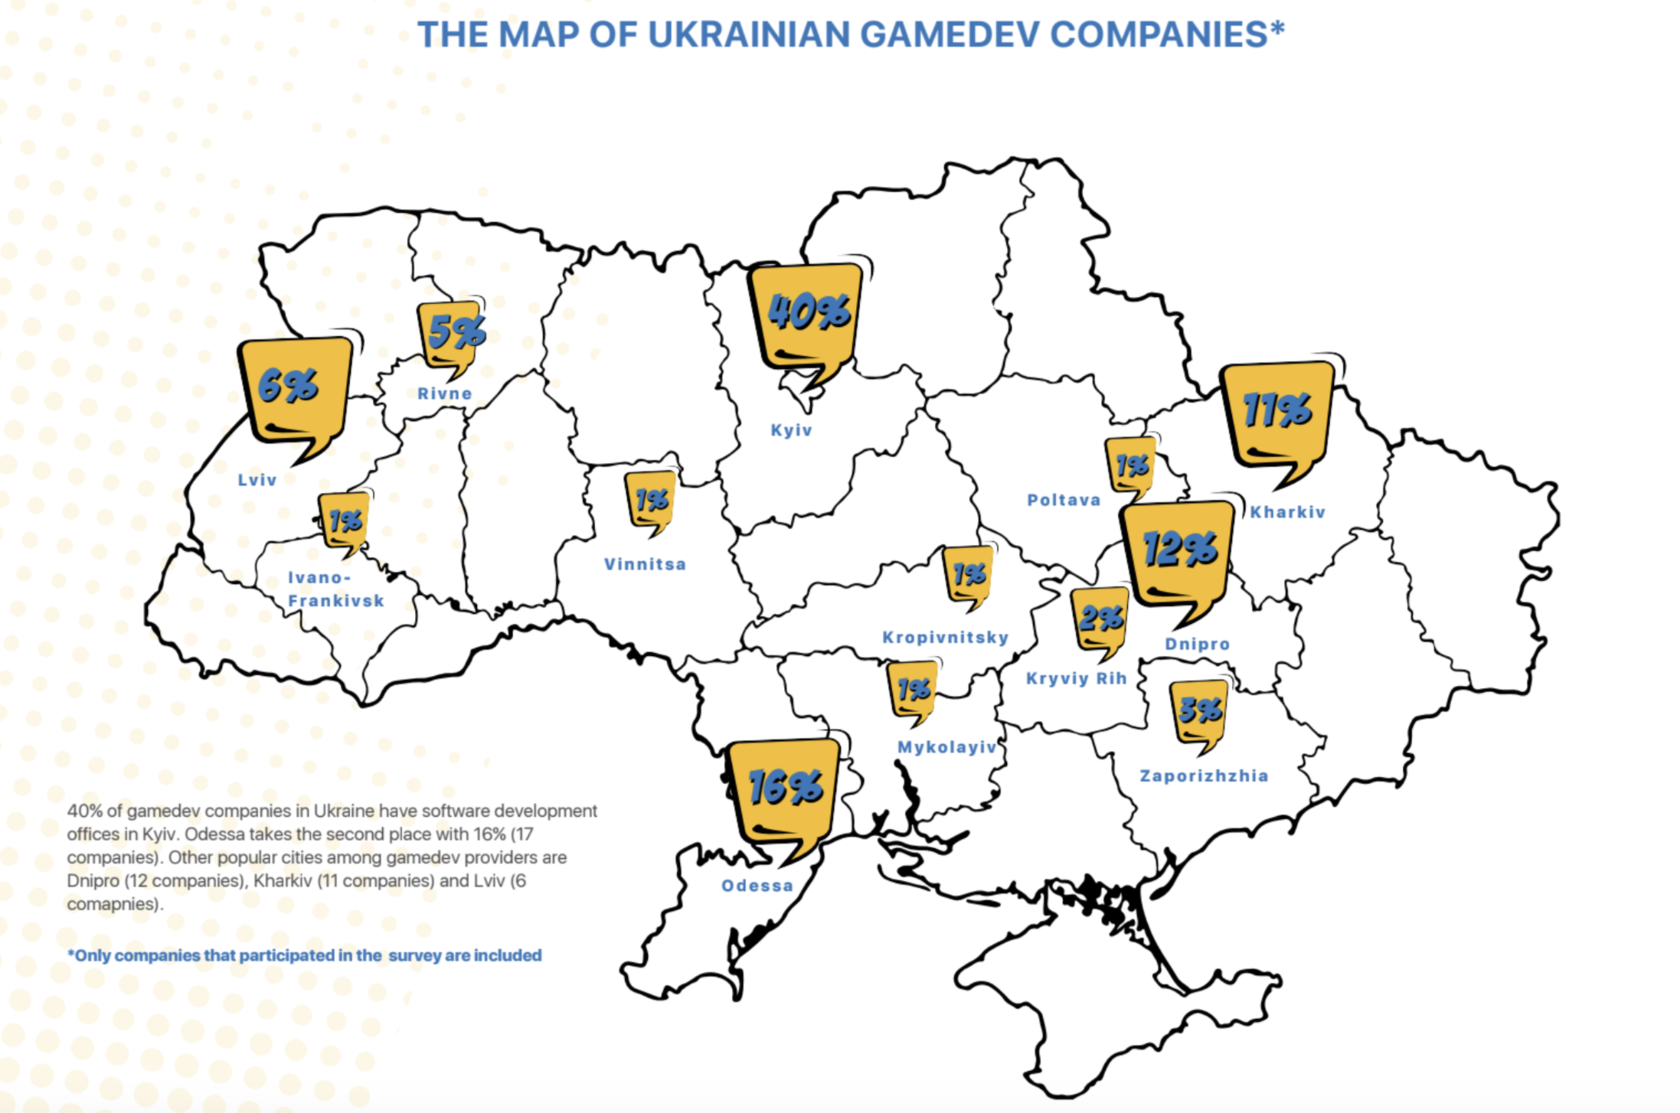 Gamedev in Ukraine 2018: Market map and industry guide on